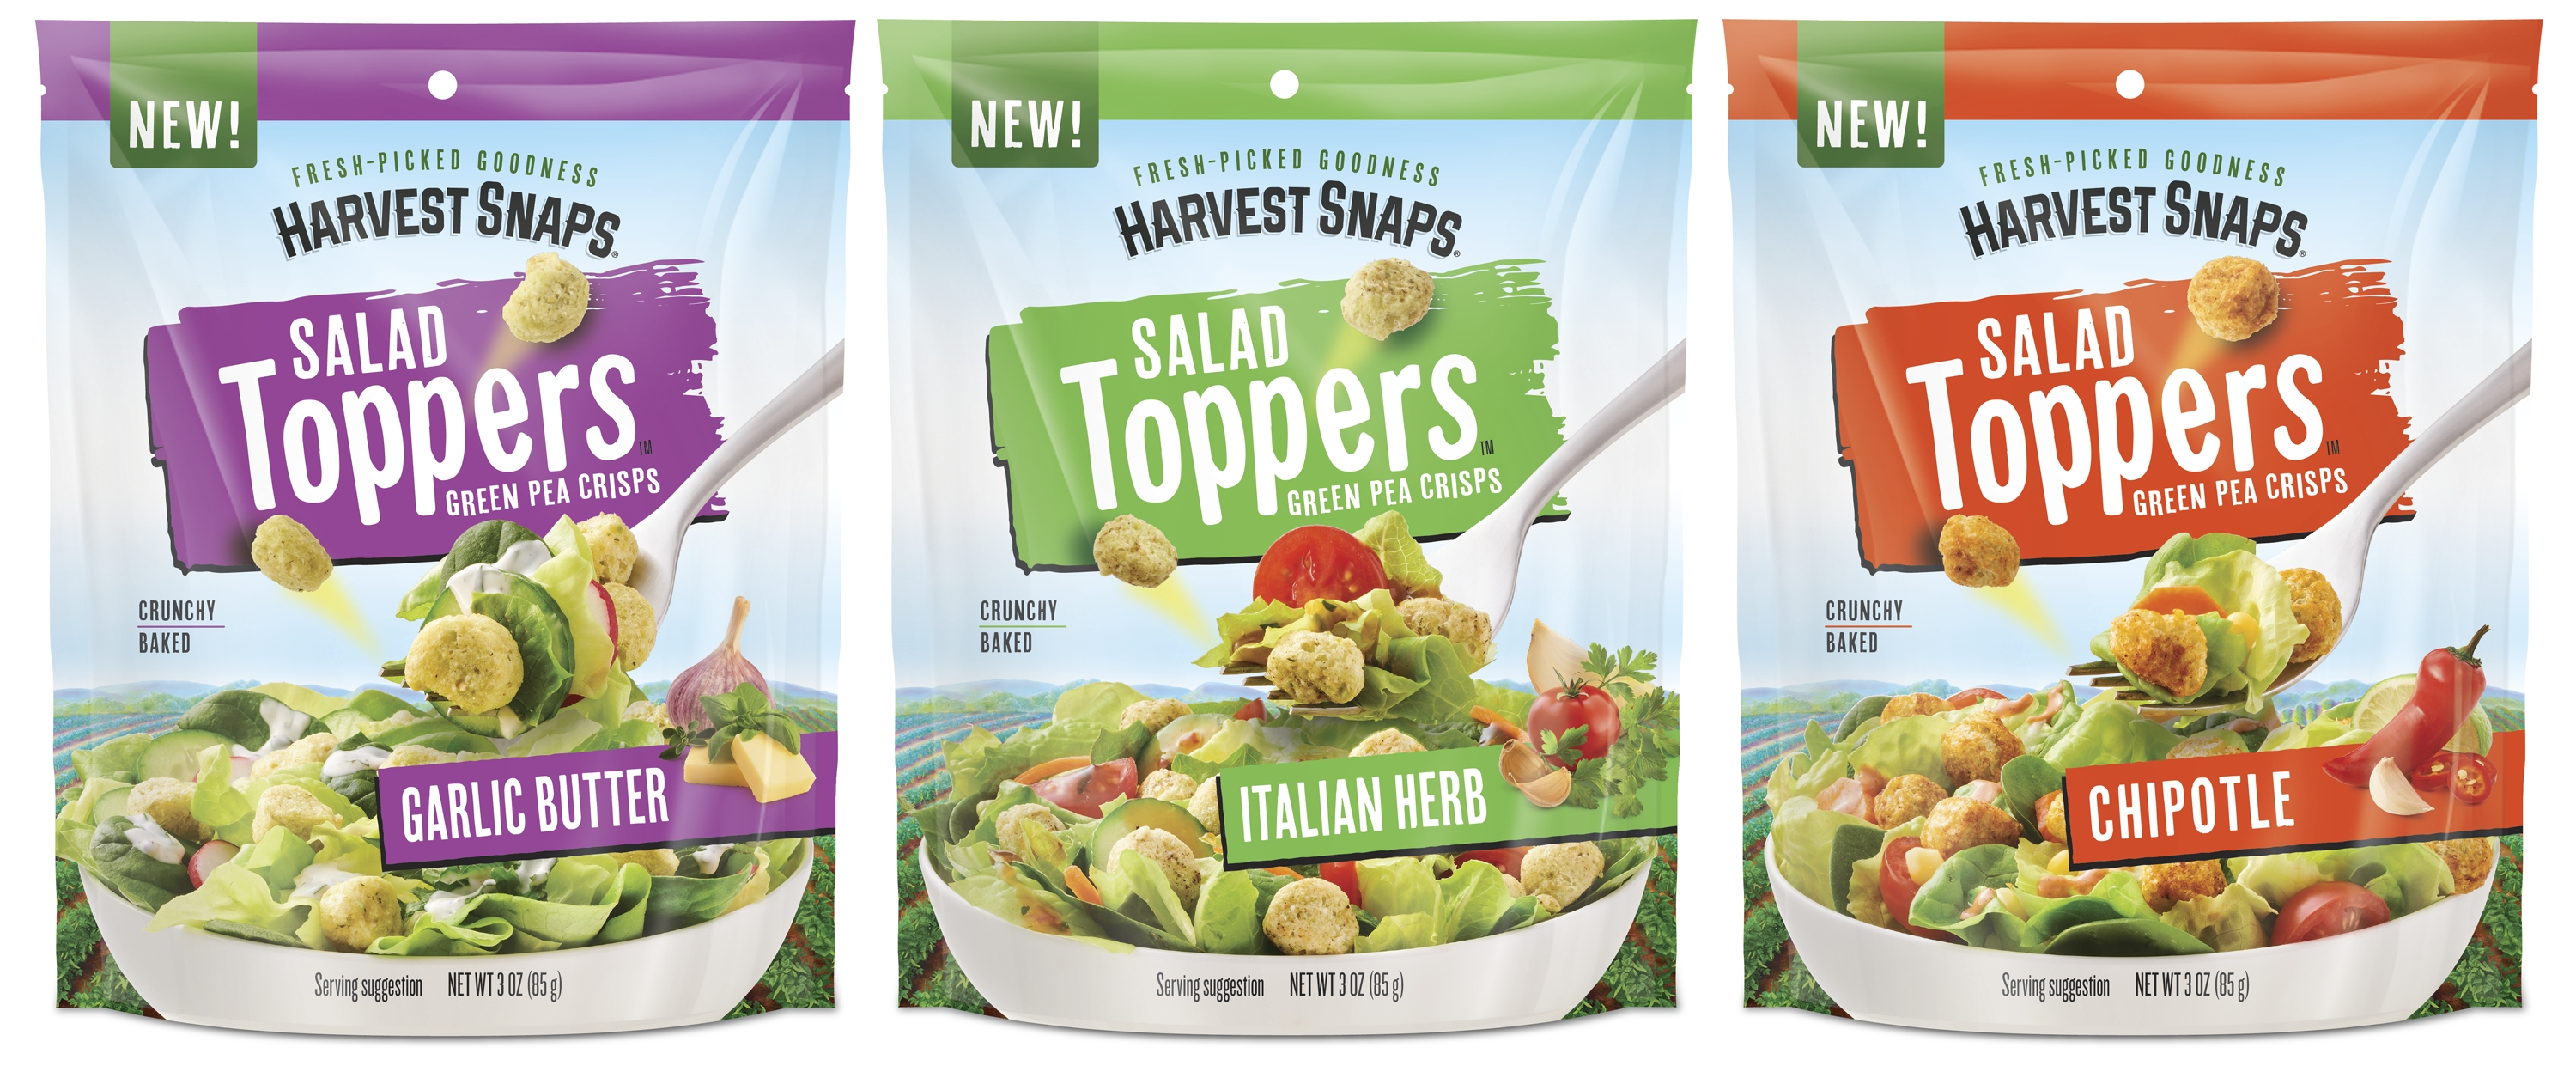 Harvest Snaps Launches Salad Toppers